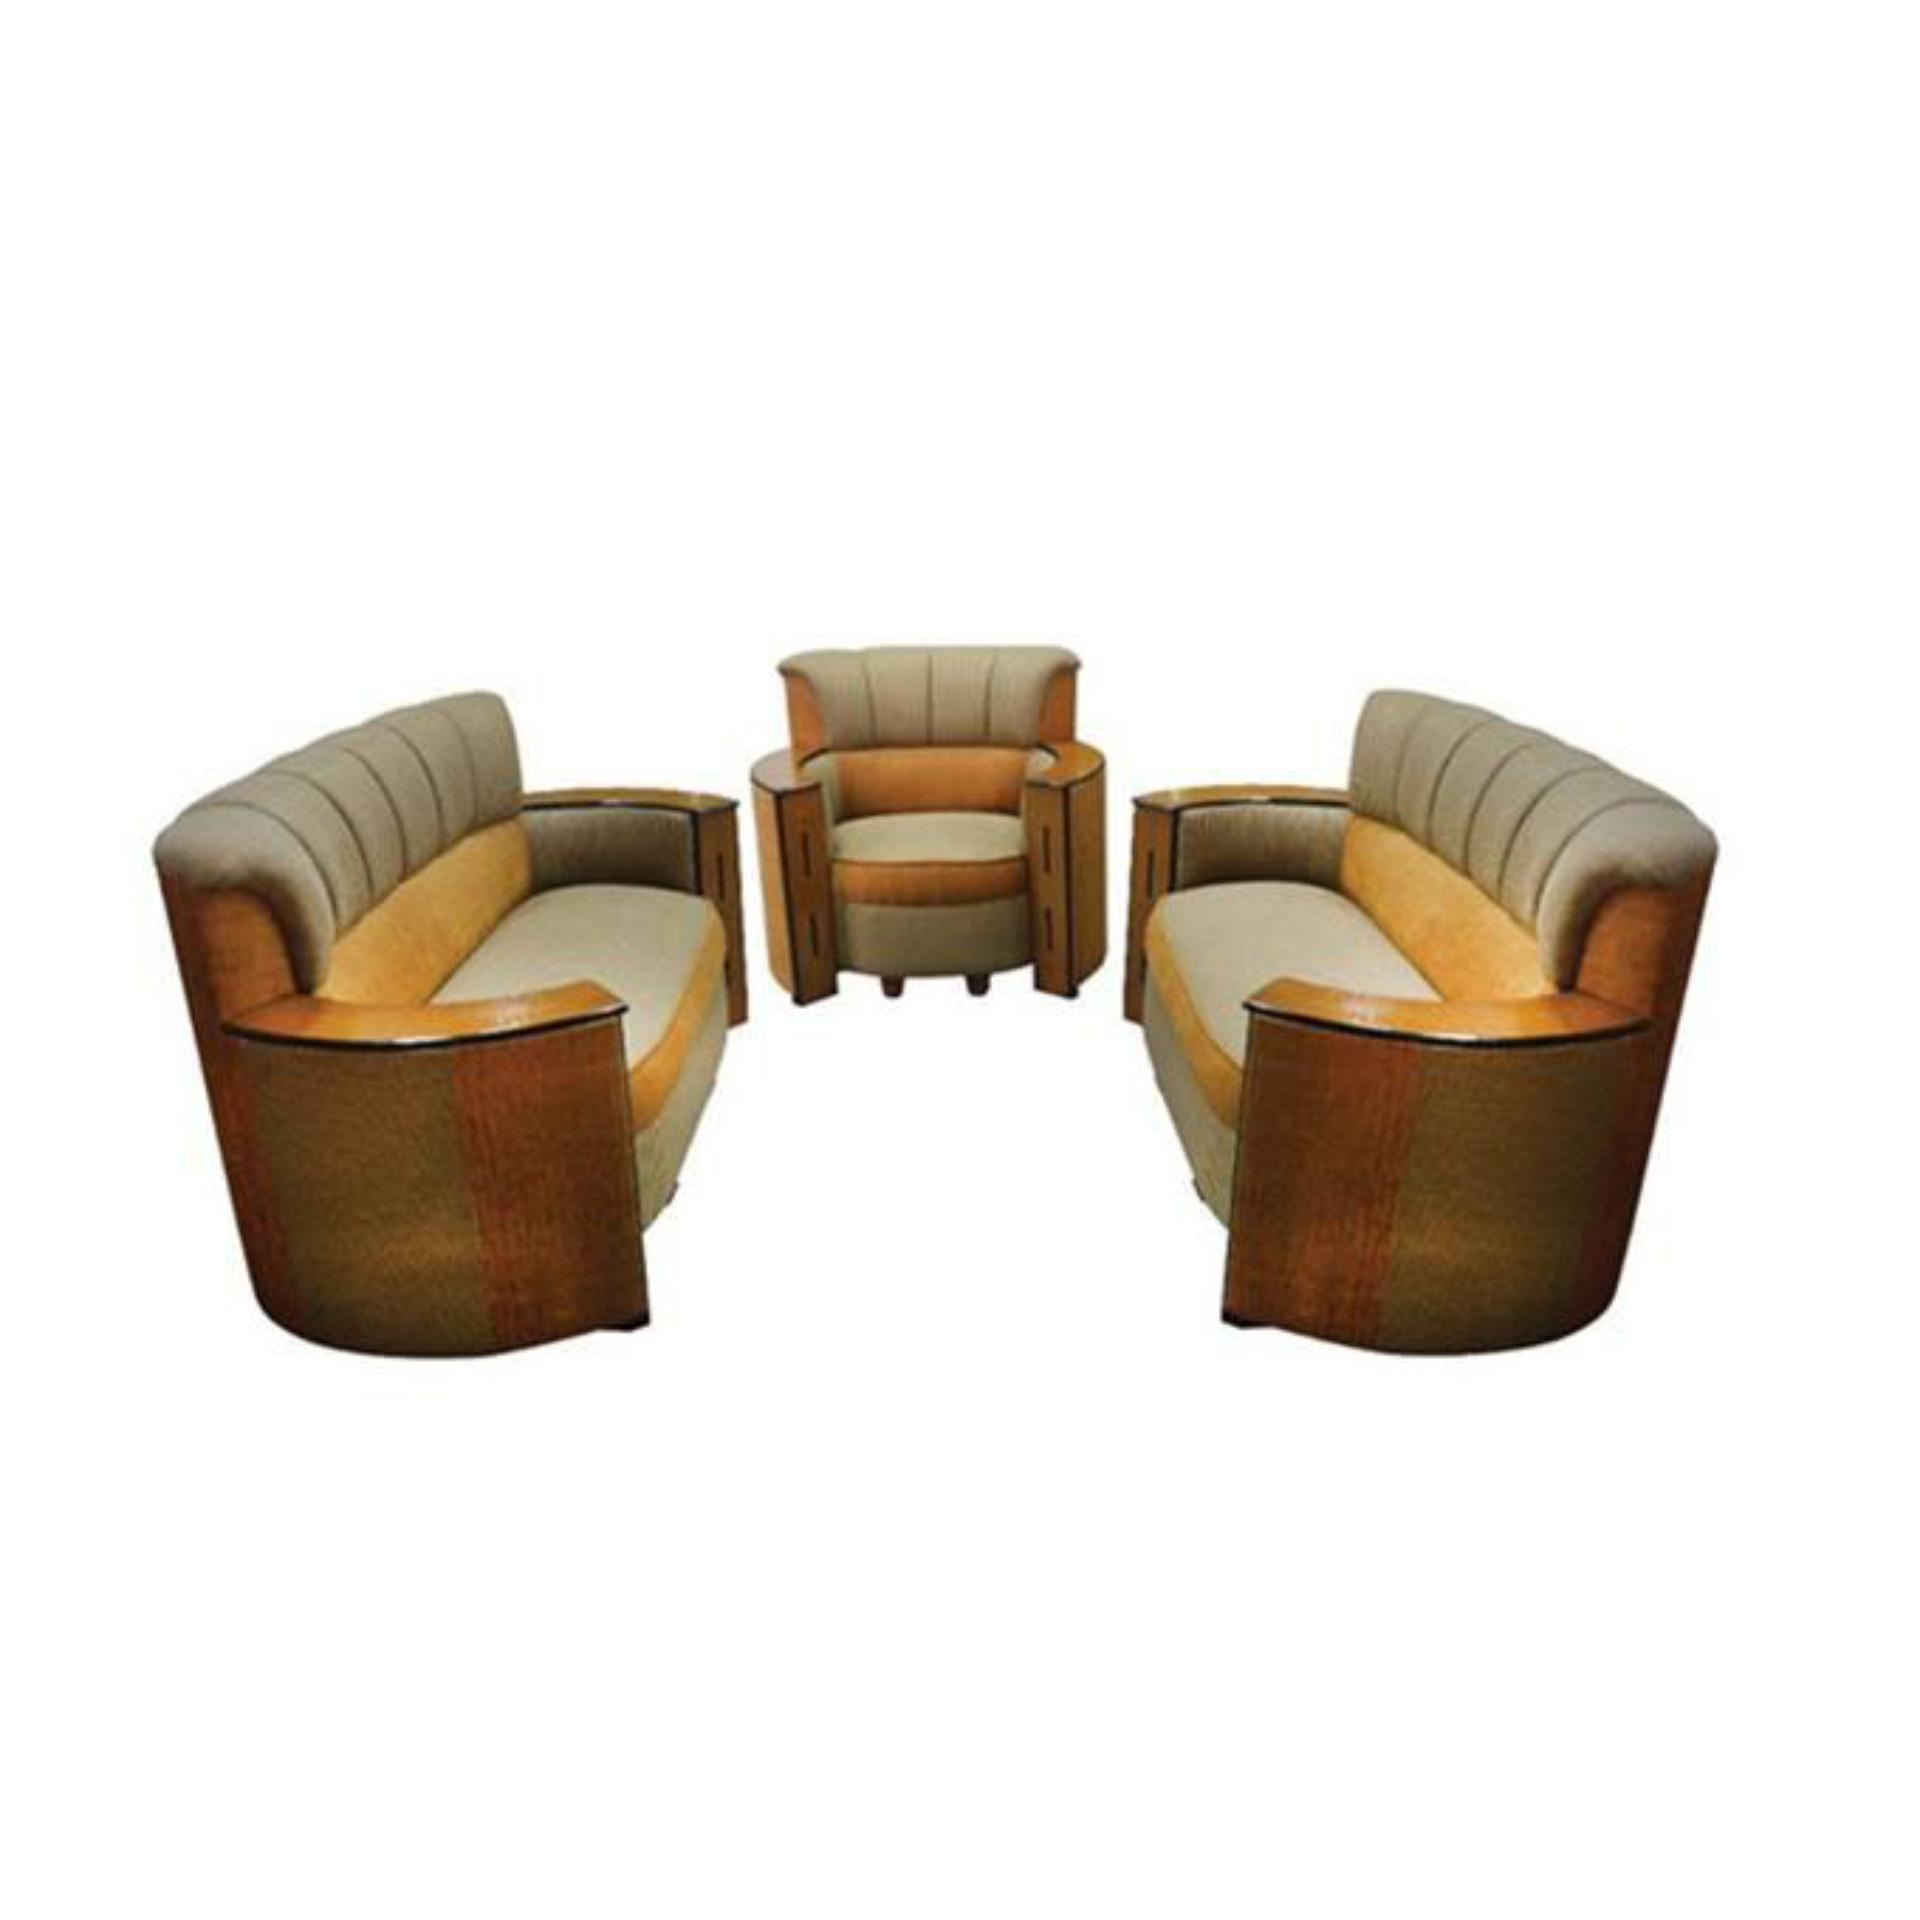 5 seater sofa set under 20000 convertible bed pozzi price in bangladesh buy new online daraz com bd sa 420 canadian process wood nice design 2 1